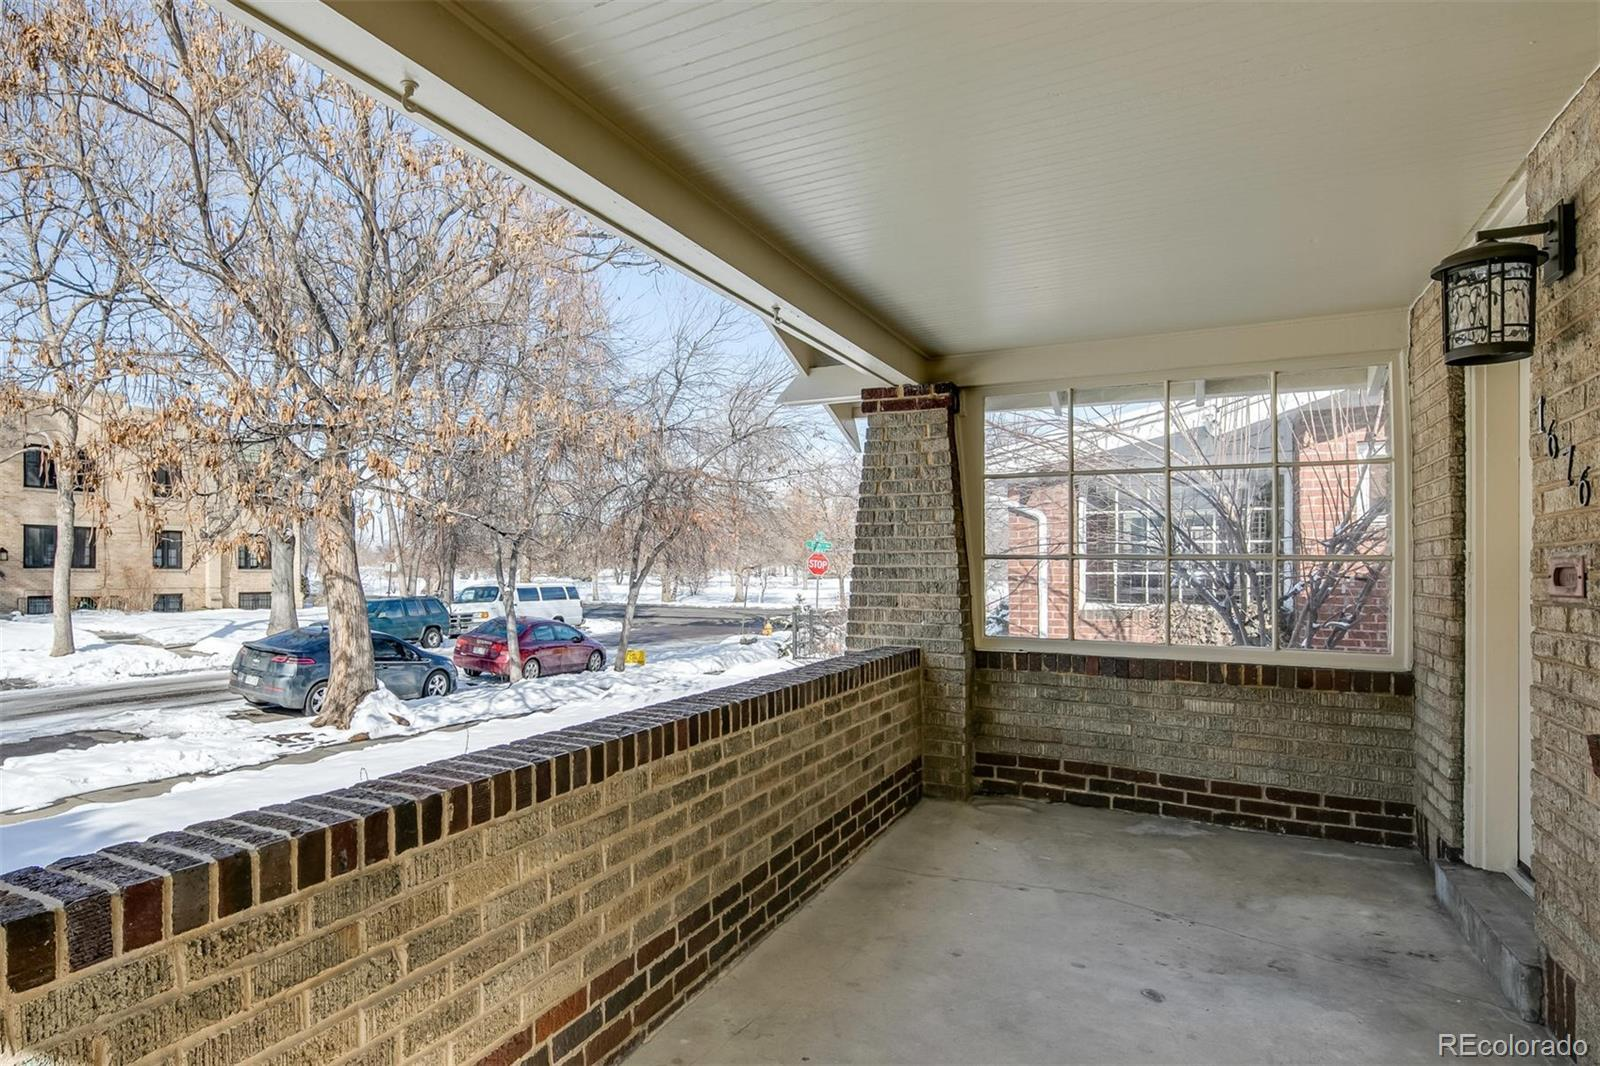 MLS# 5026749 - 4 - 1676 Garfield Street, Denver, CO 80206